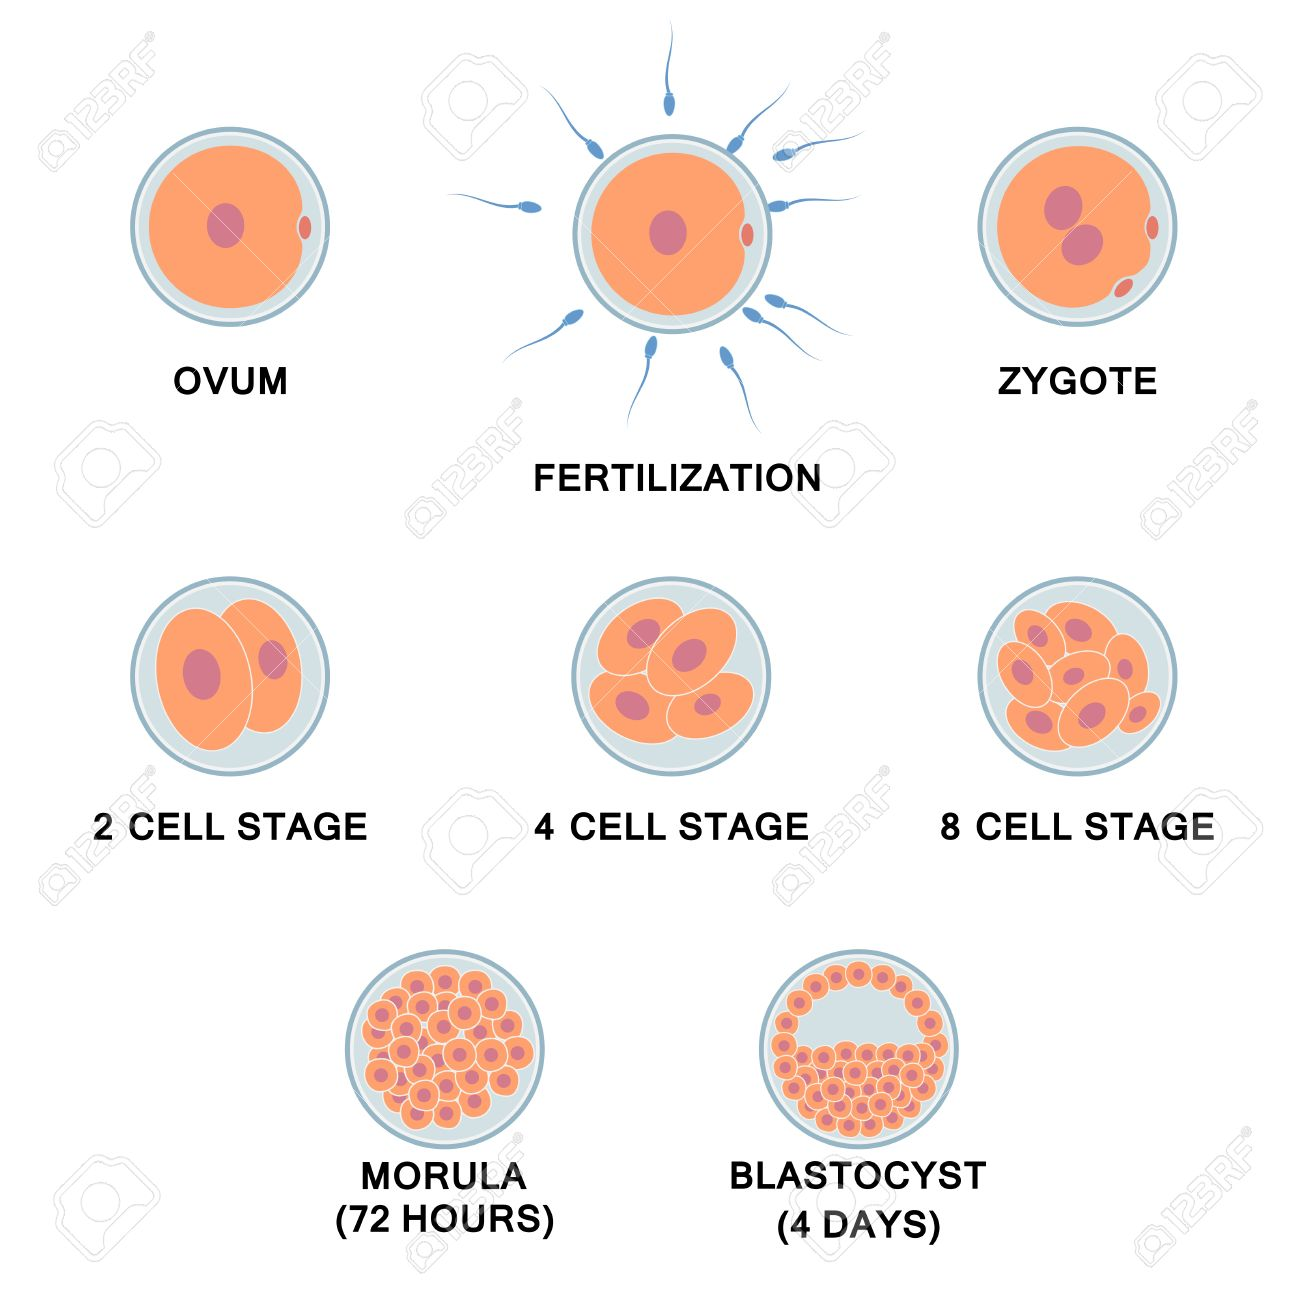 Development Of The Human Embryo Images Of Stages From Ovum To